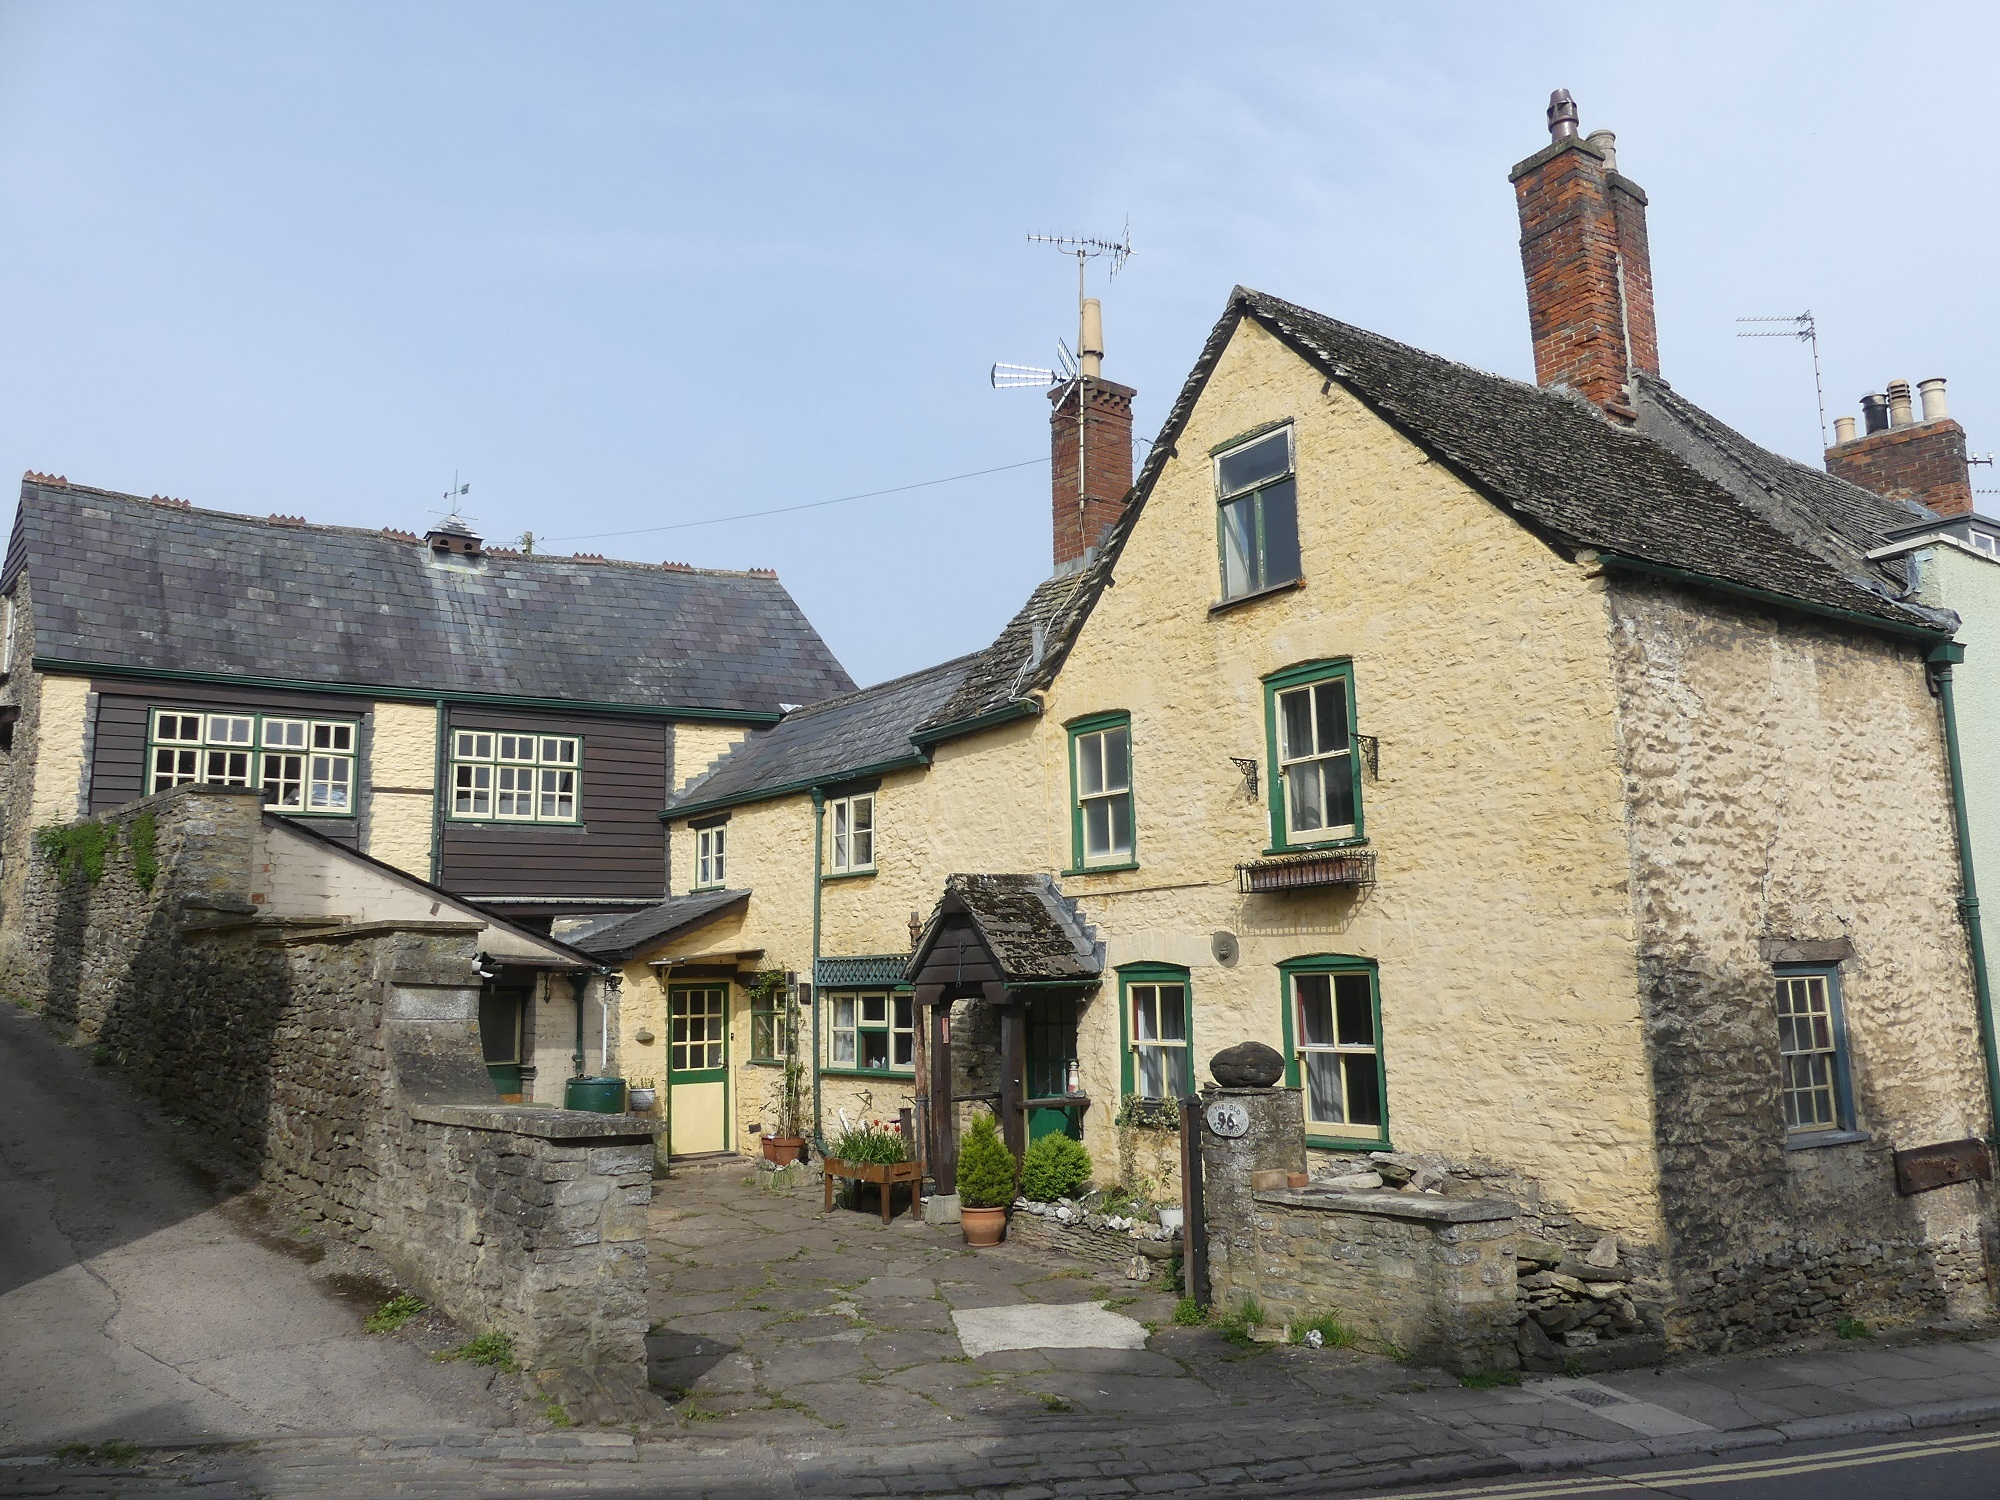 HOME OF THE WEEK: The Malmesbury cottage perfect for a redevelopment project